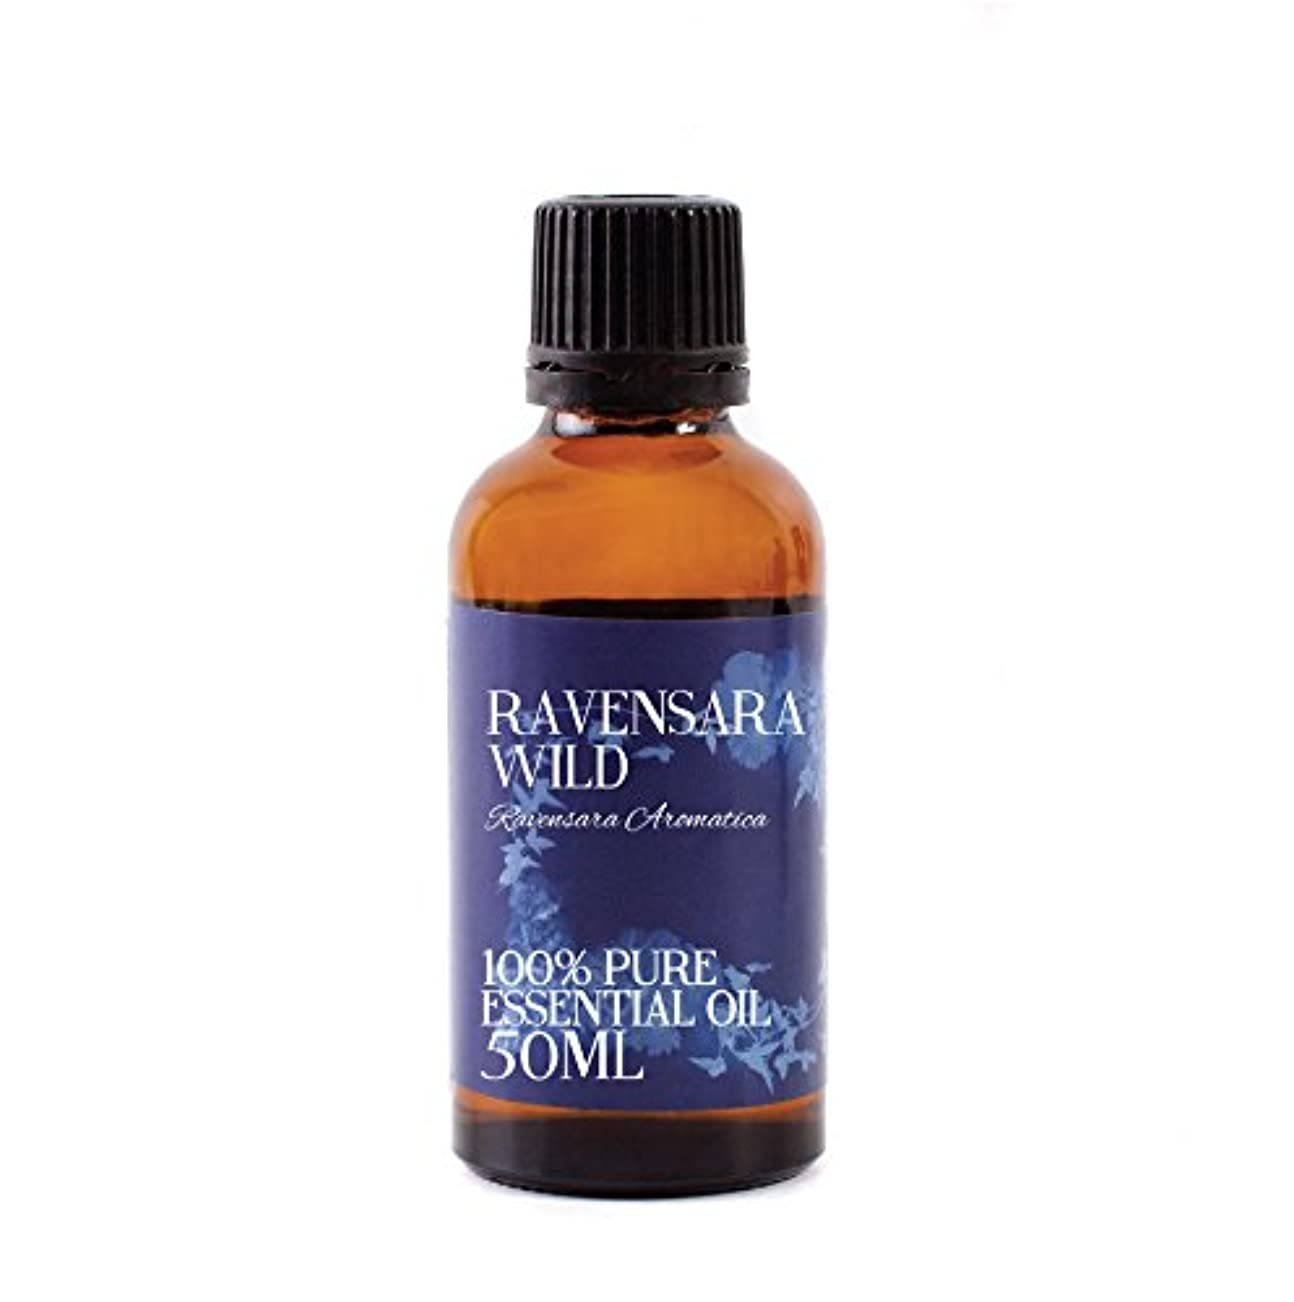 味わうスタンドパイントMystic Moments | Ravensara Wild Essential Oil - 50ml - 100% Pure